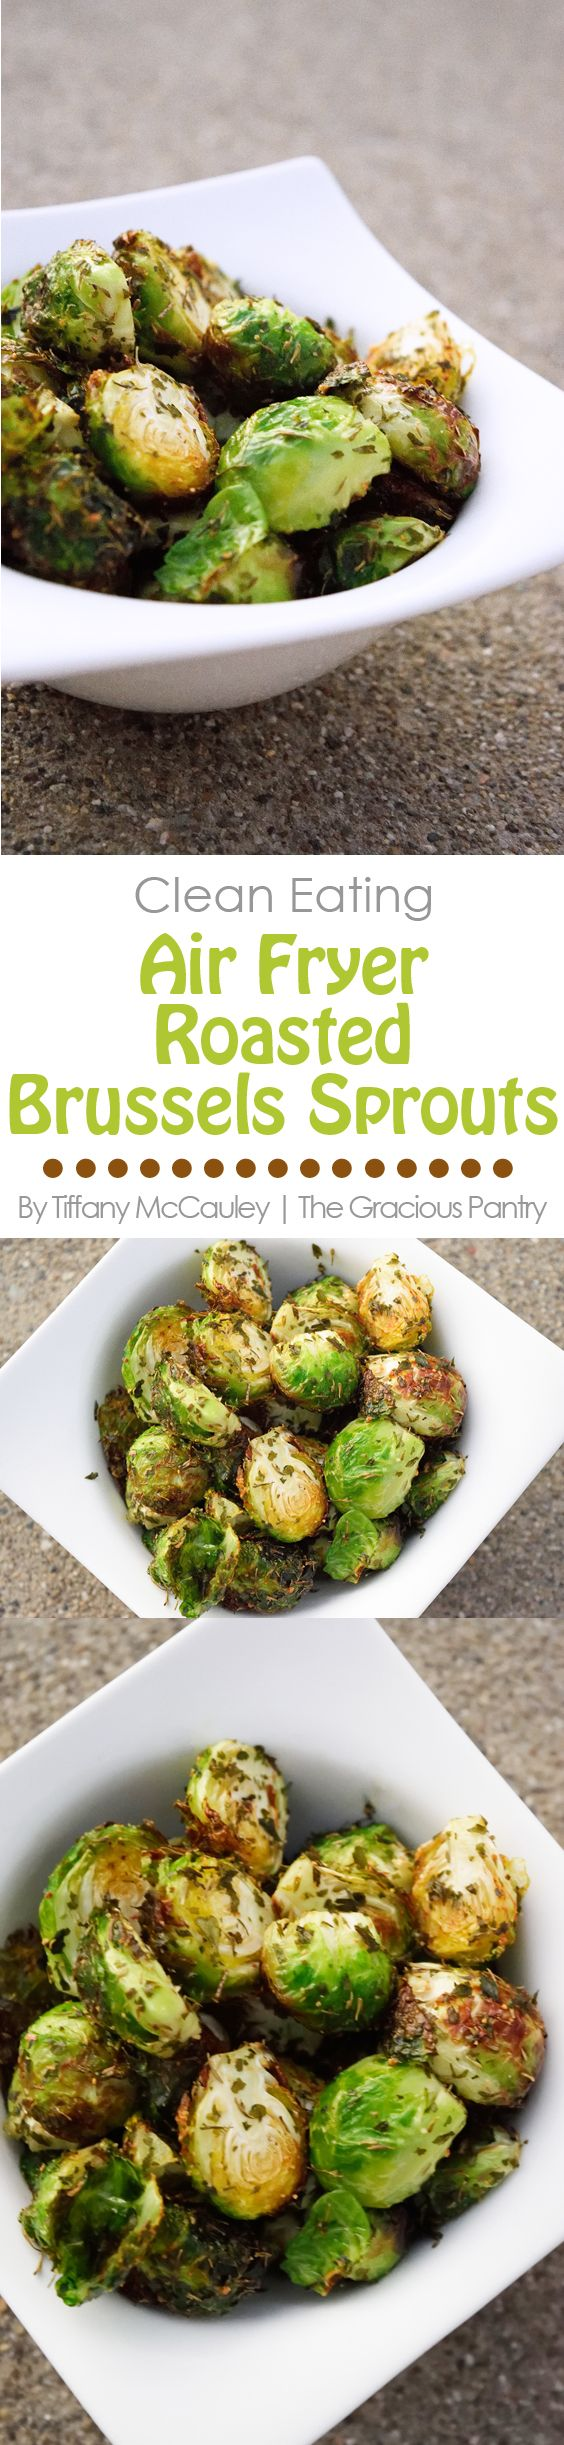 Clean Eating Recipes | Ai Fryer Recipes | Air Fryer Roasted Brussels Sprouts Recipe #CleanEating #EatClean #AirFryerRecipe ~ https://www.thegraciouspantry.com